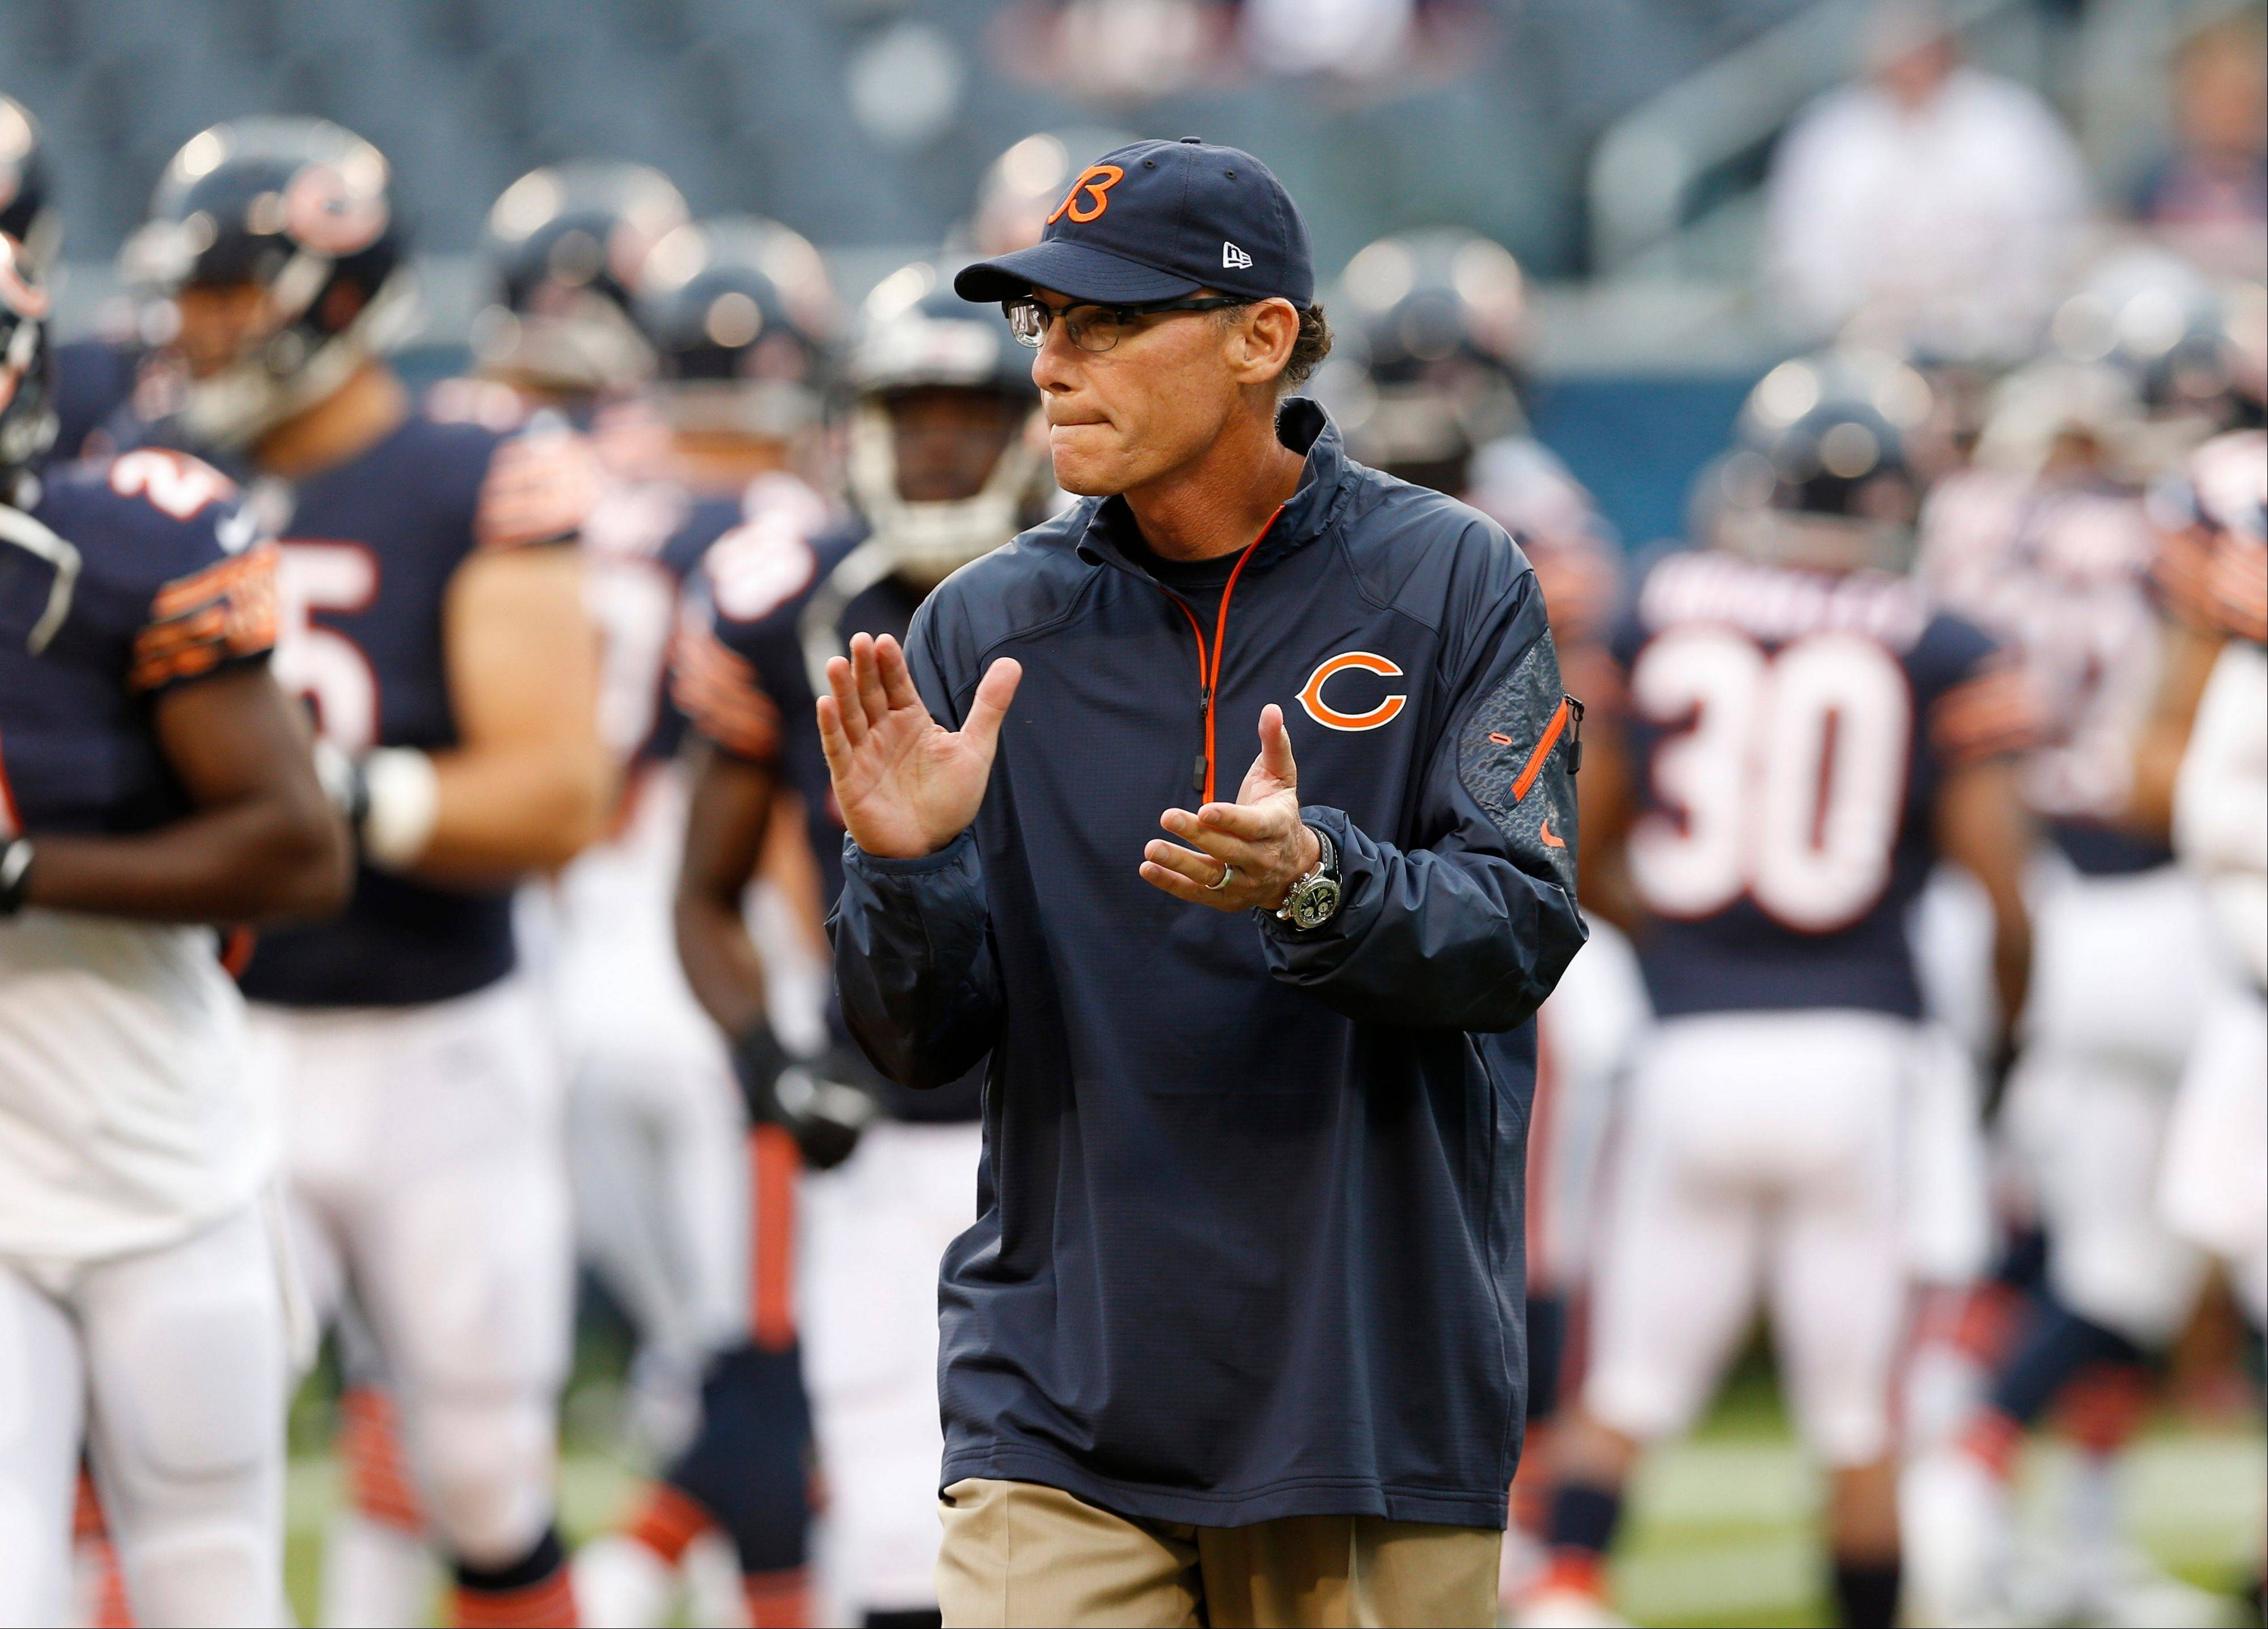 With Bears head coach Marc Trestman on the sidelines, the offense has a chance to join the 21st century attacks employed throughout the NFL.